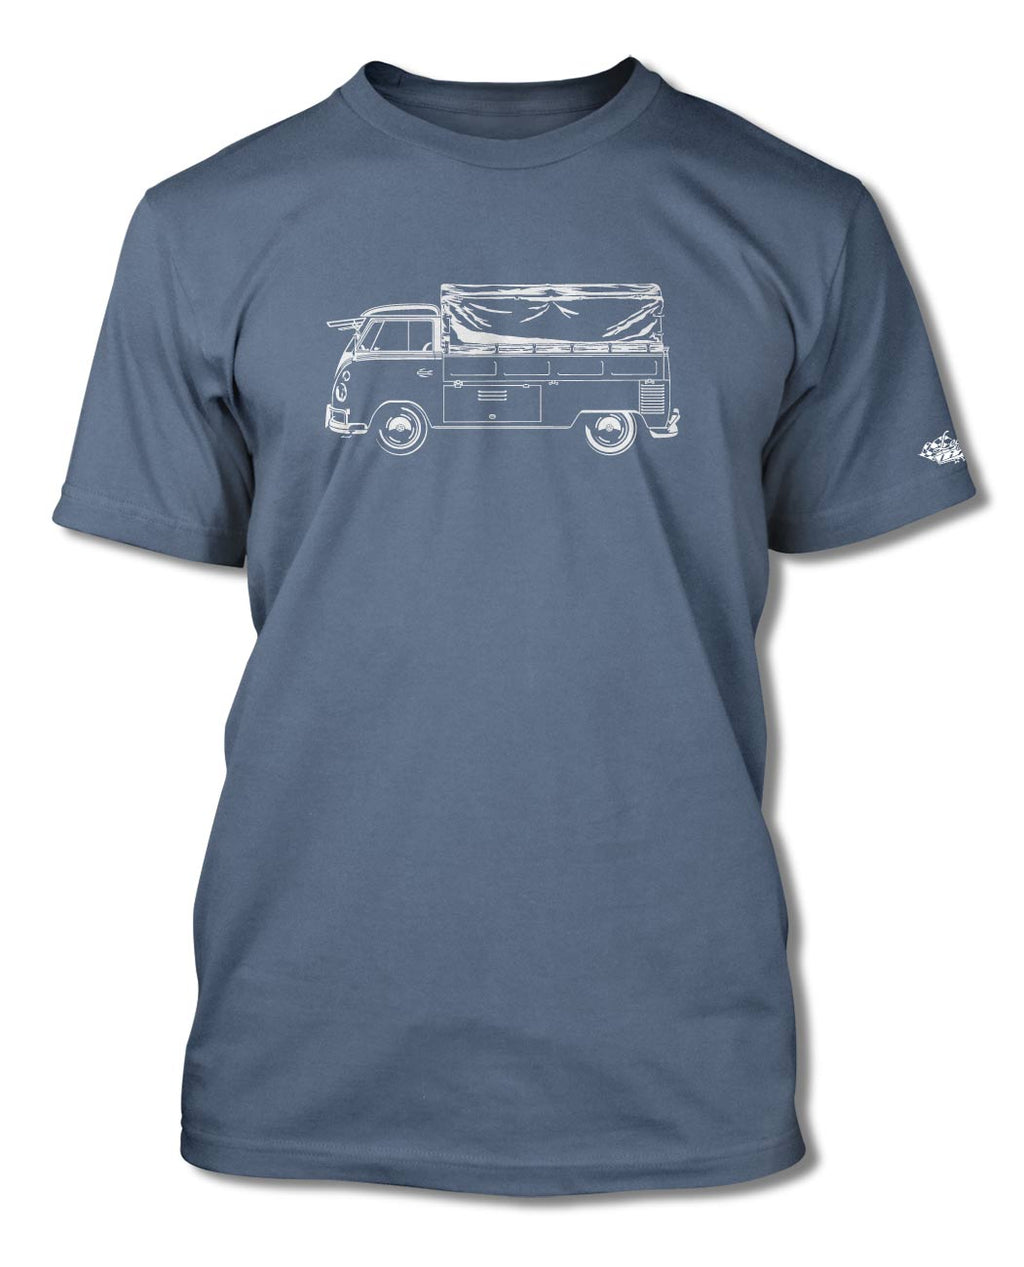 Volkswagen Kombi Utility Pickup Covered Bed T-Shirt - Men - Side View